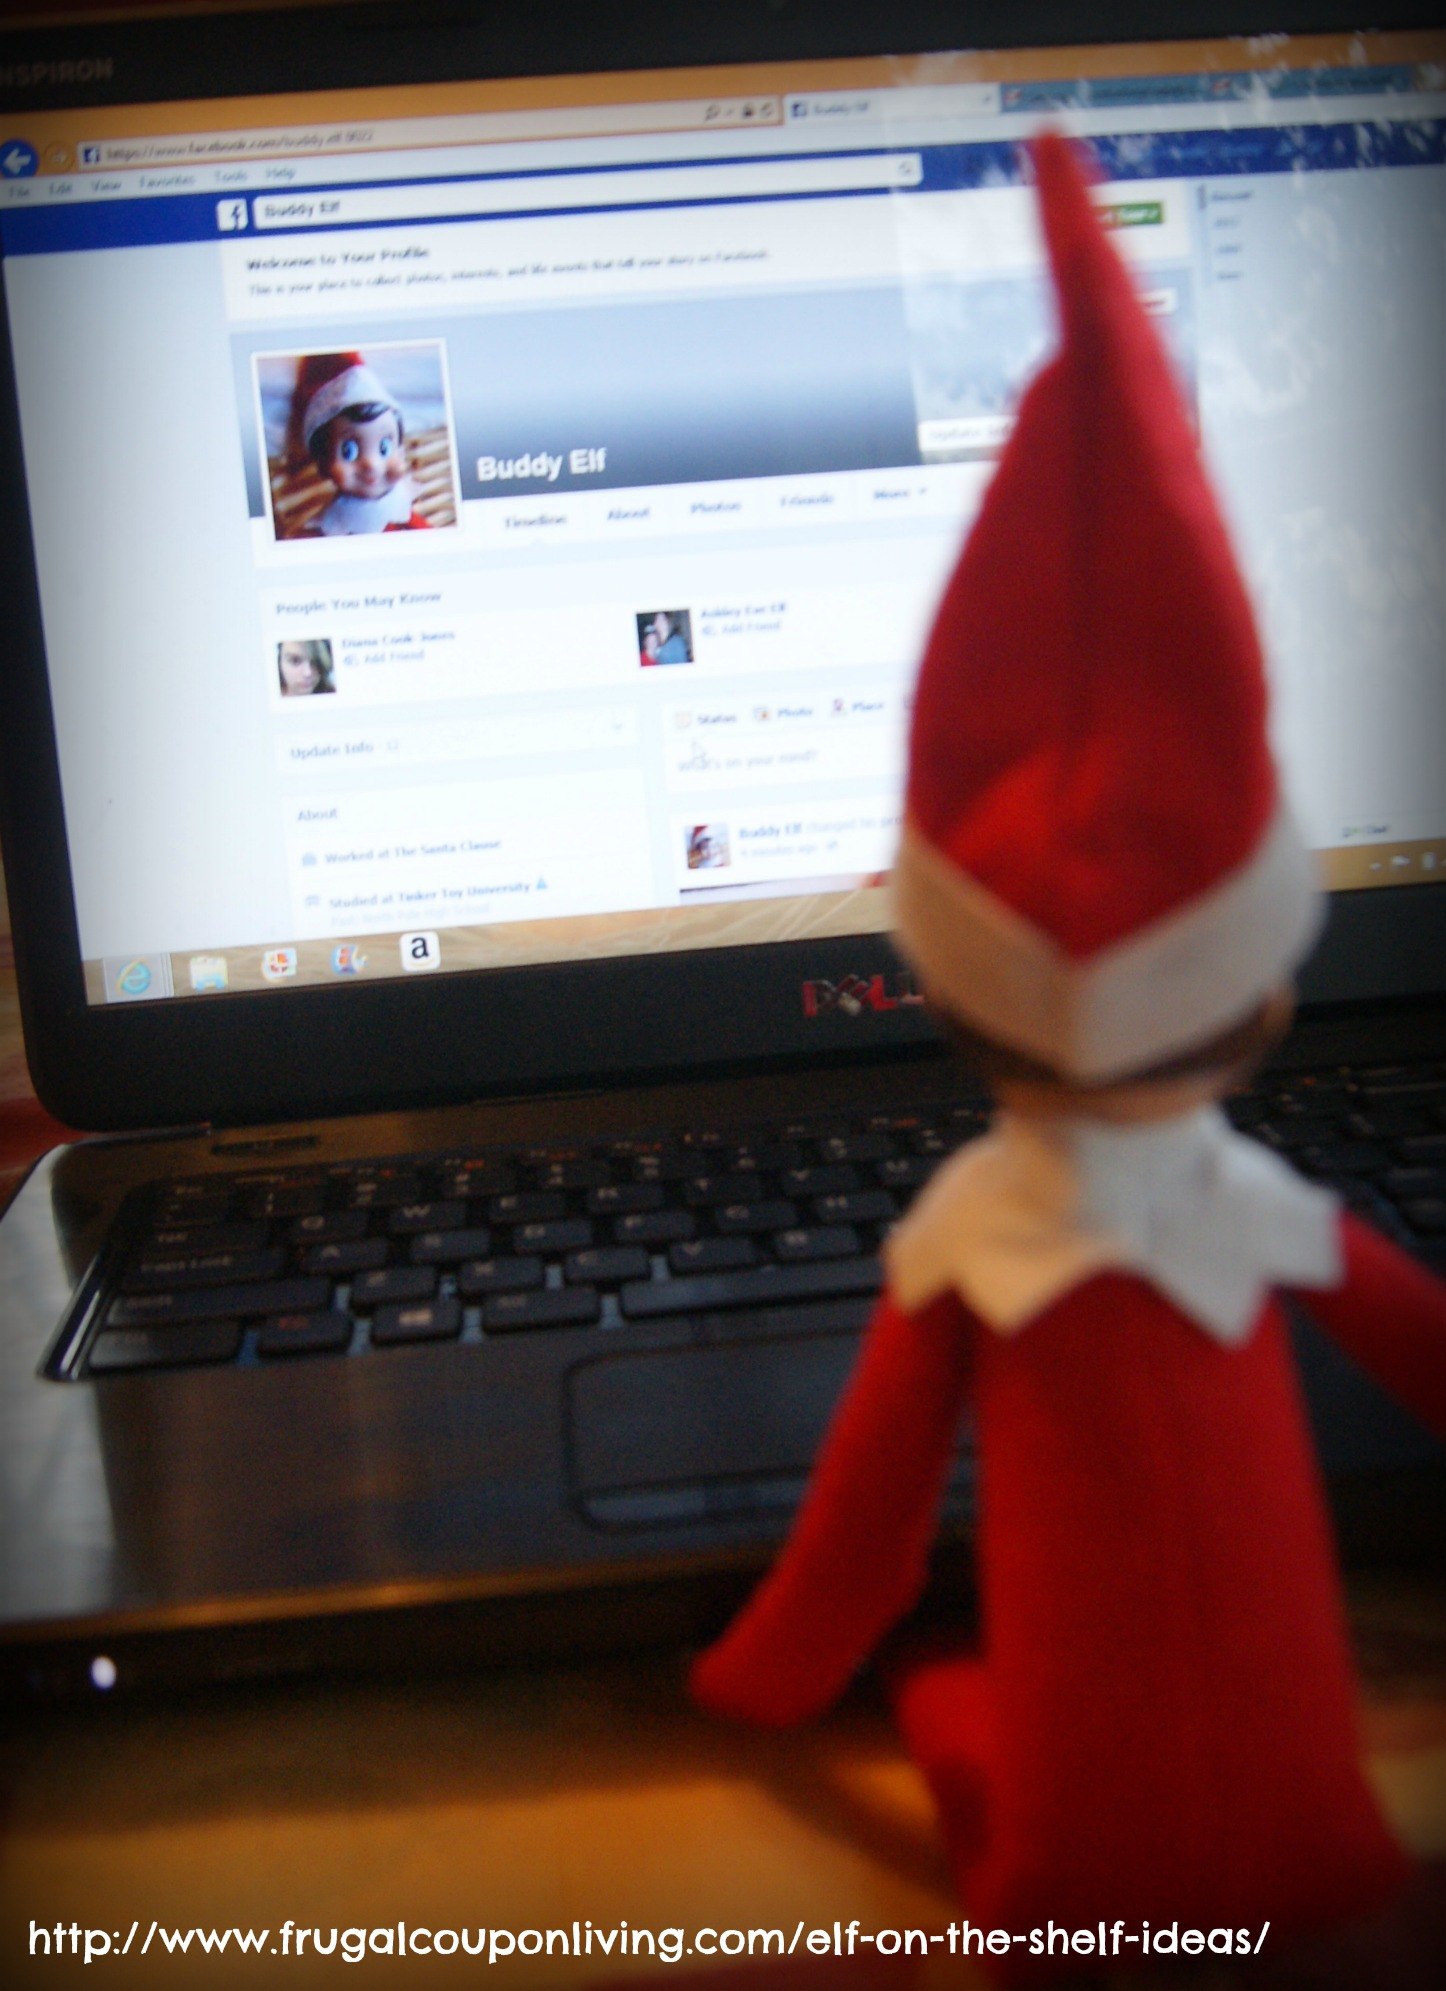 buddy-the-elf-on-the-shelf-ideas-on-facebook-frugal-coupon-living